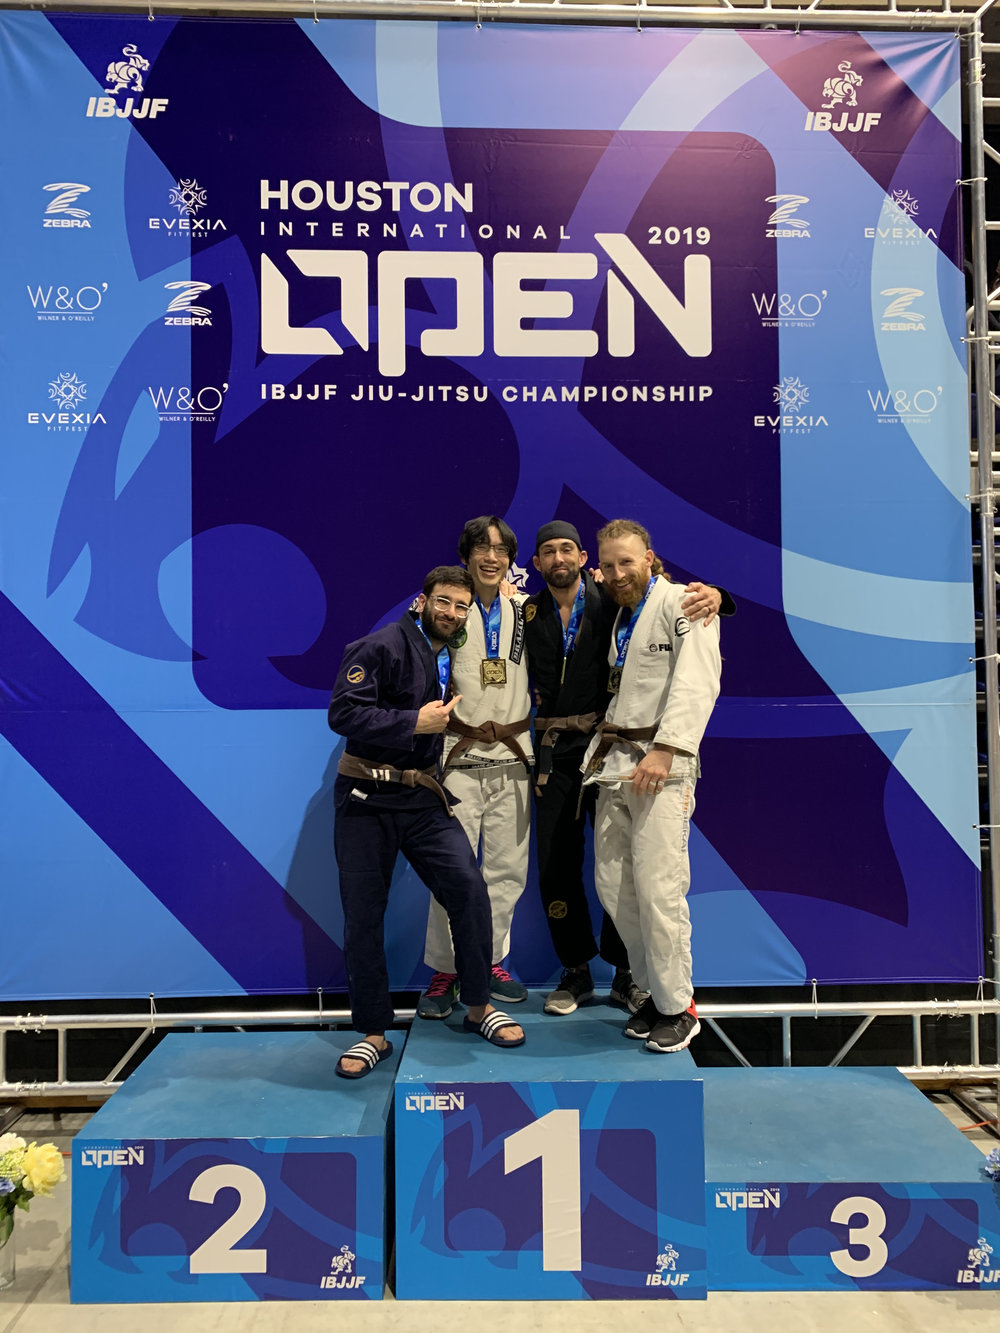 """""""Now, my goal is to share the happiness that I have found through Jiu-Jitsu with my students and help them accomplish their goals.'     -Danny Kou"""